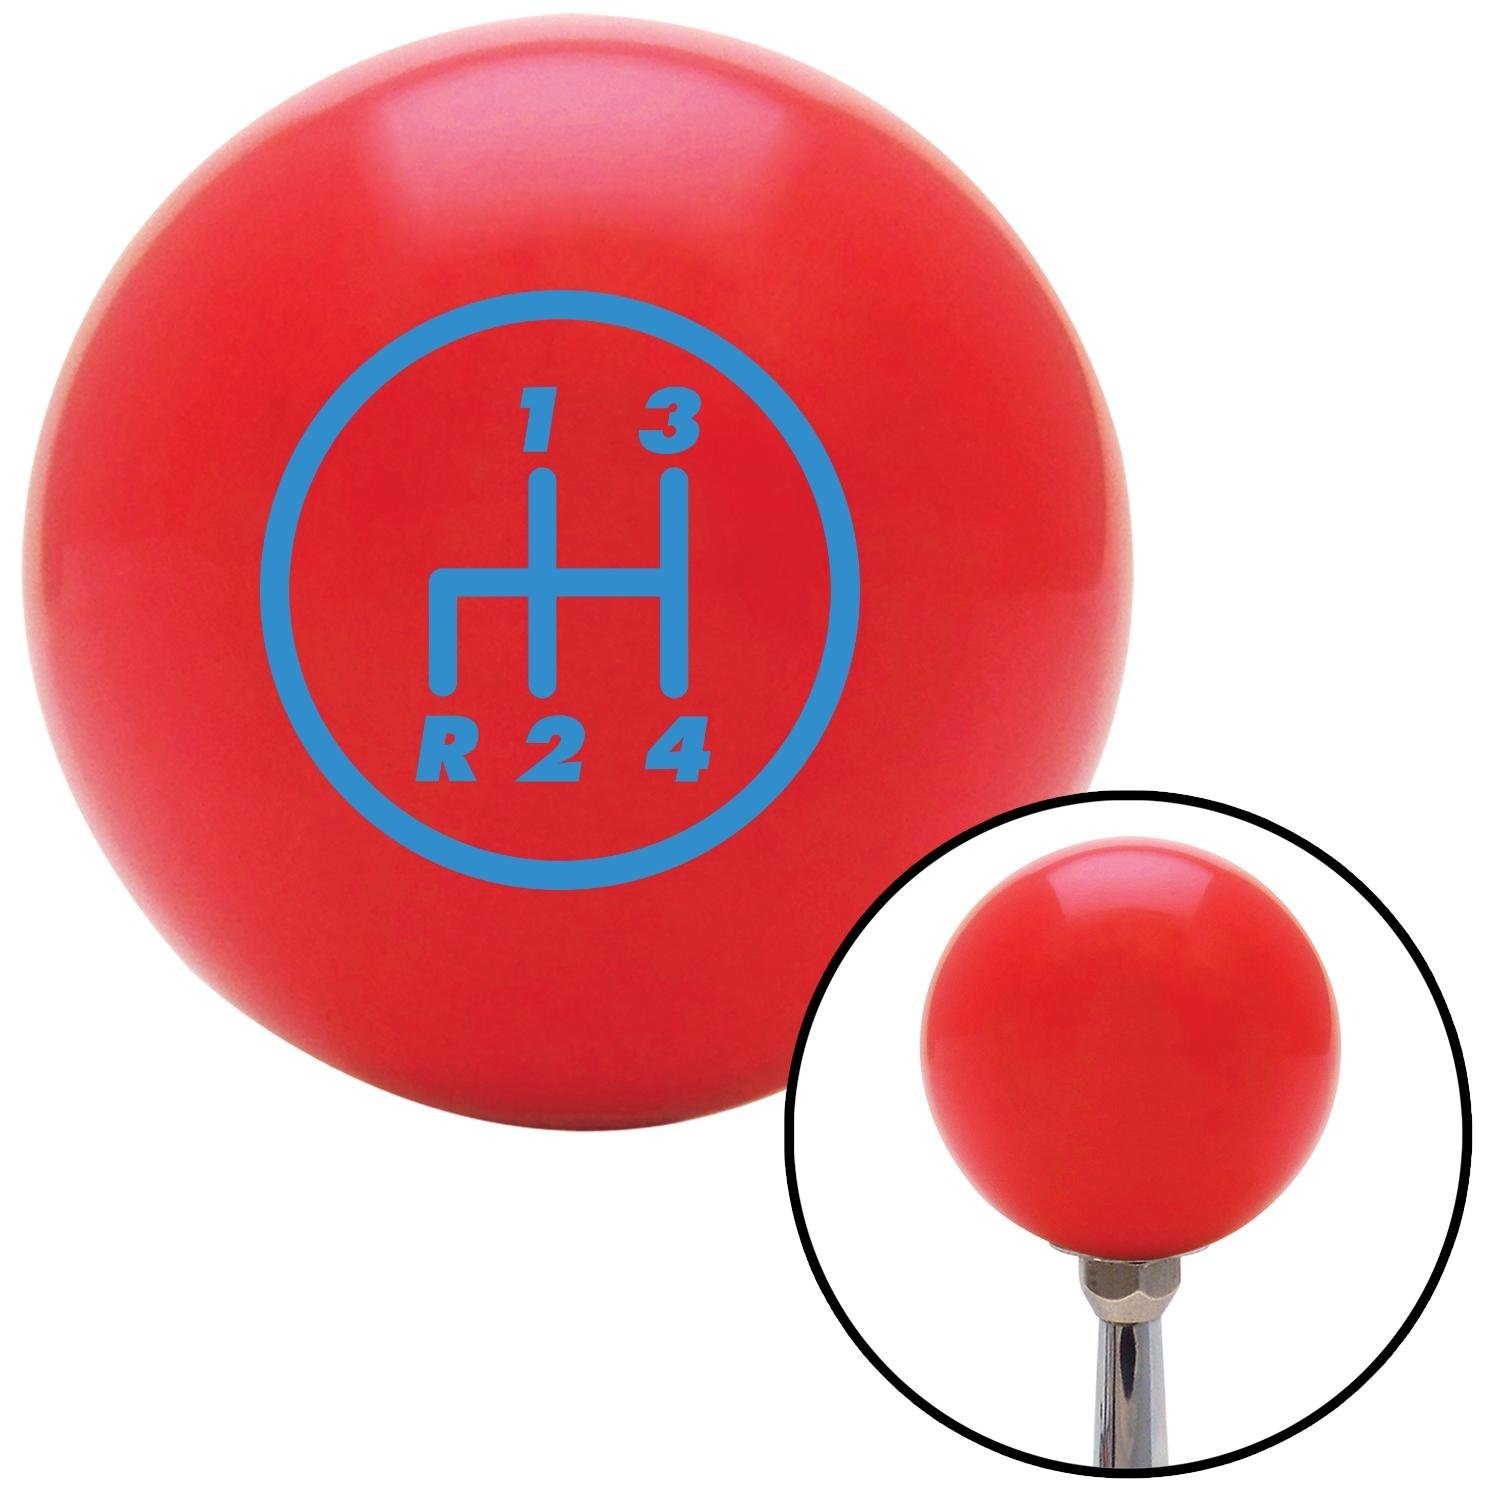 Blue 4 Speed Shift Pattern - 4RDL American Shifter 99664 Red Shift Knob with M16 x 1.5 Insert